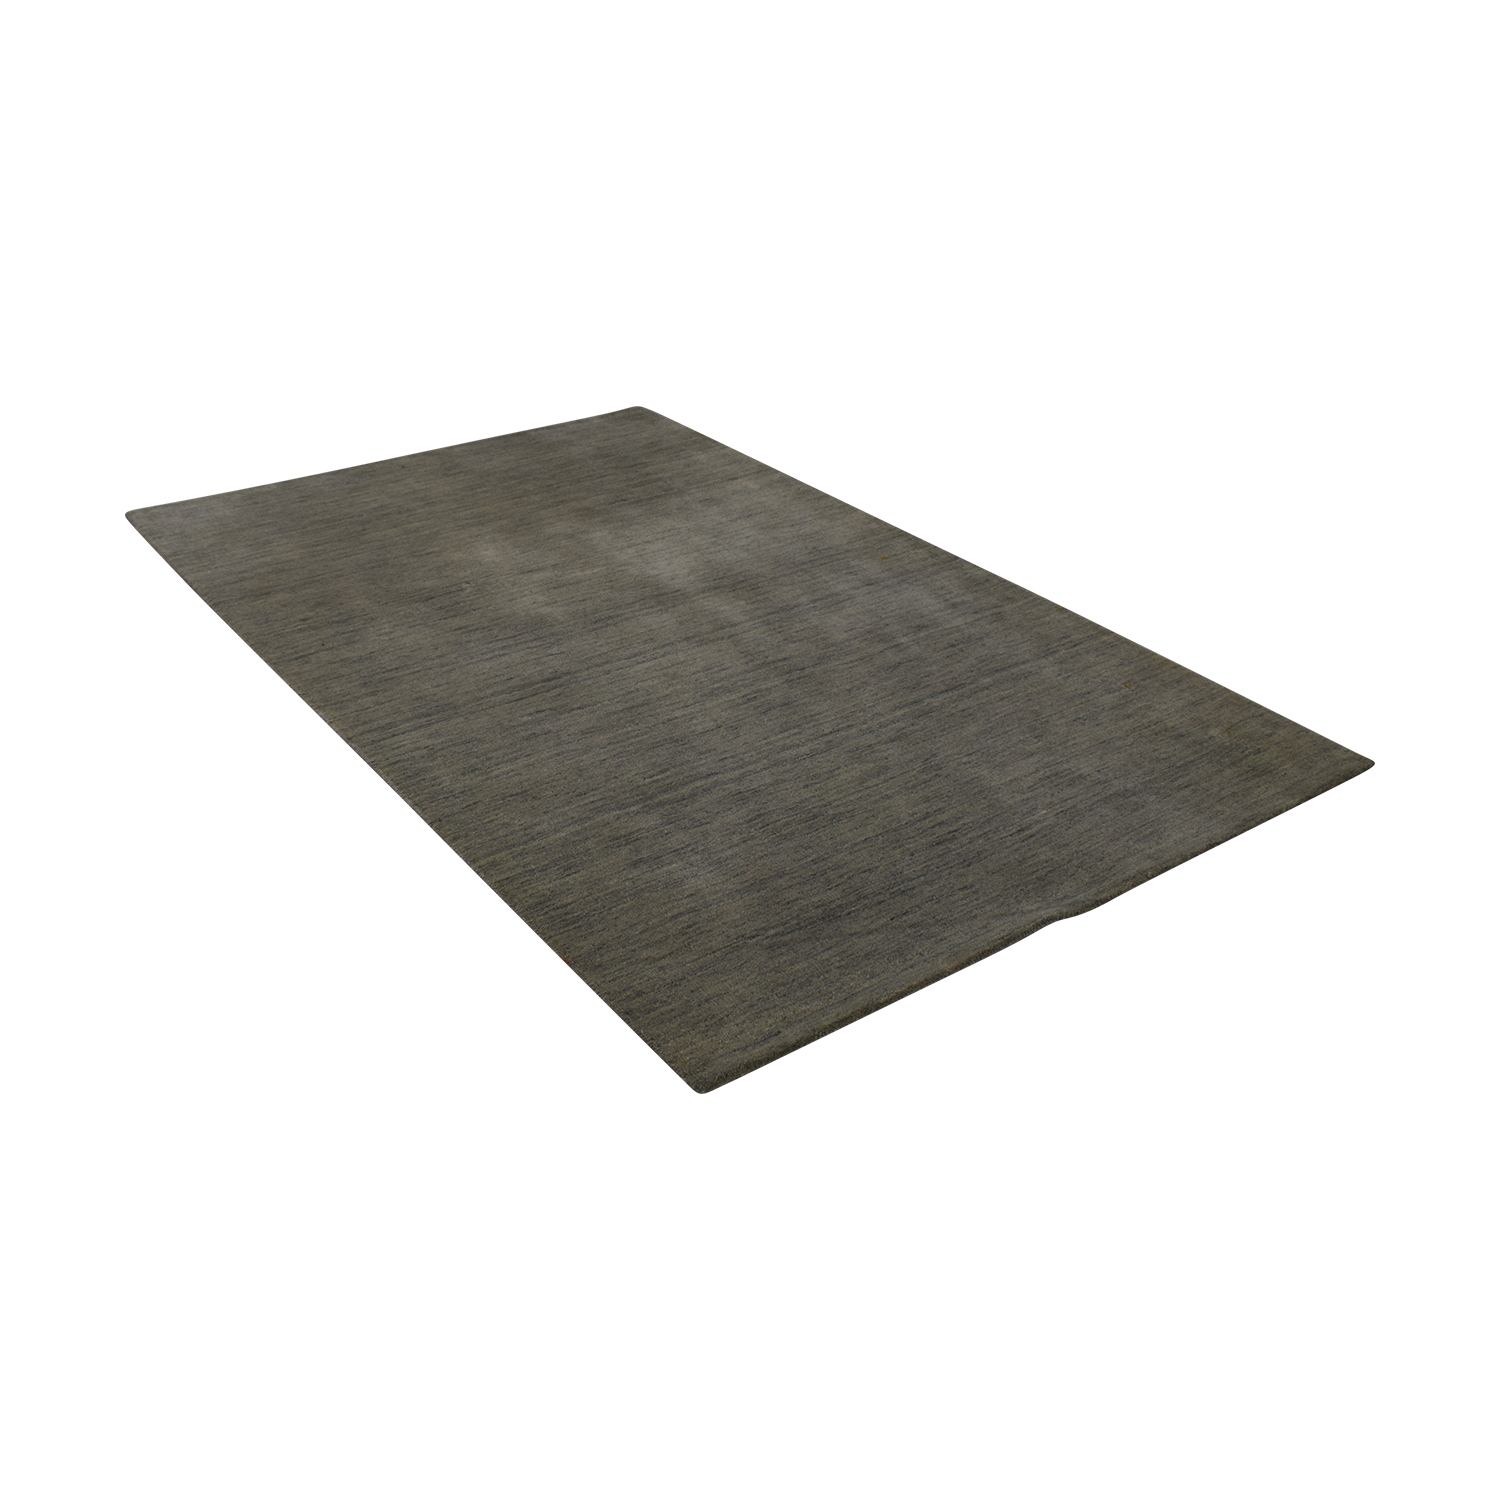 Oriental Weavers Oriental Weavers Aniston Grey Rug on sale